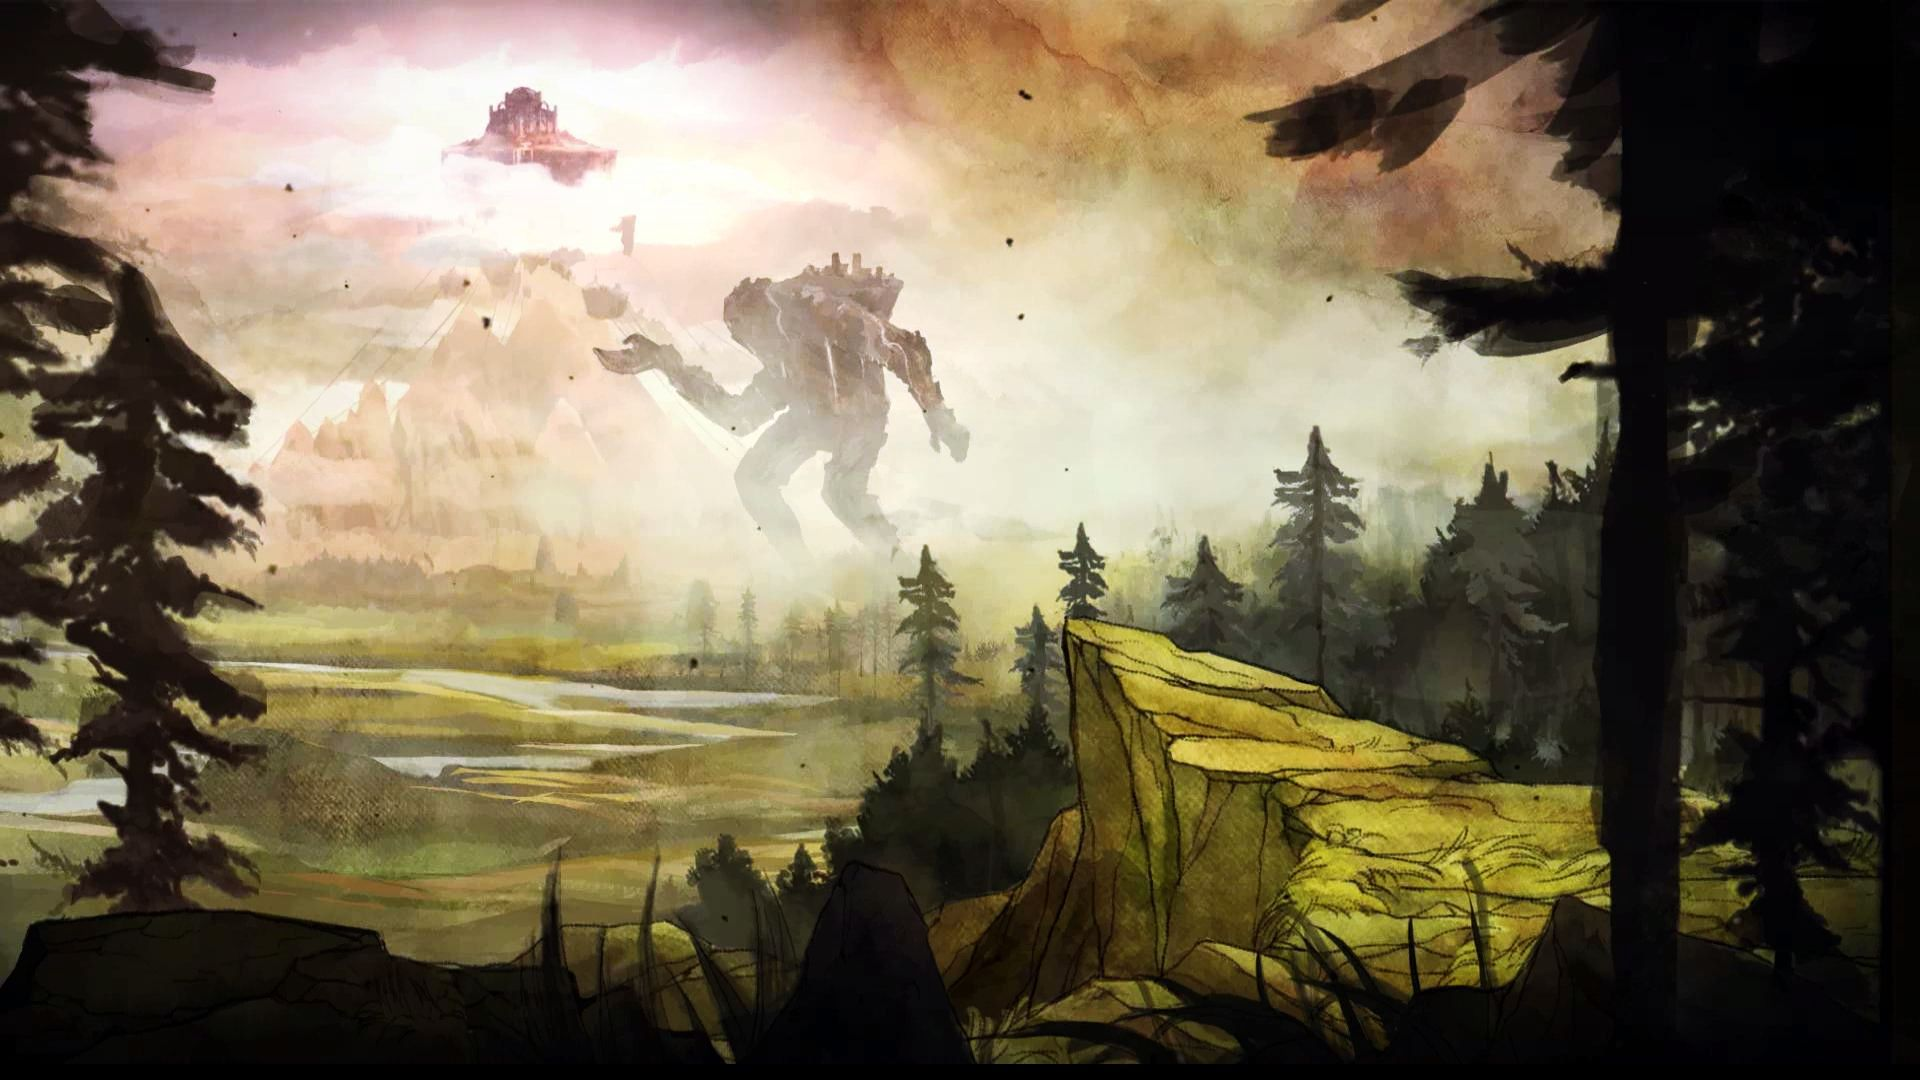 Ps4 Wallpaper Hd Child Of Light Wallpapers Archives Hdwallsource Com